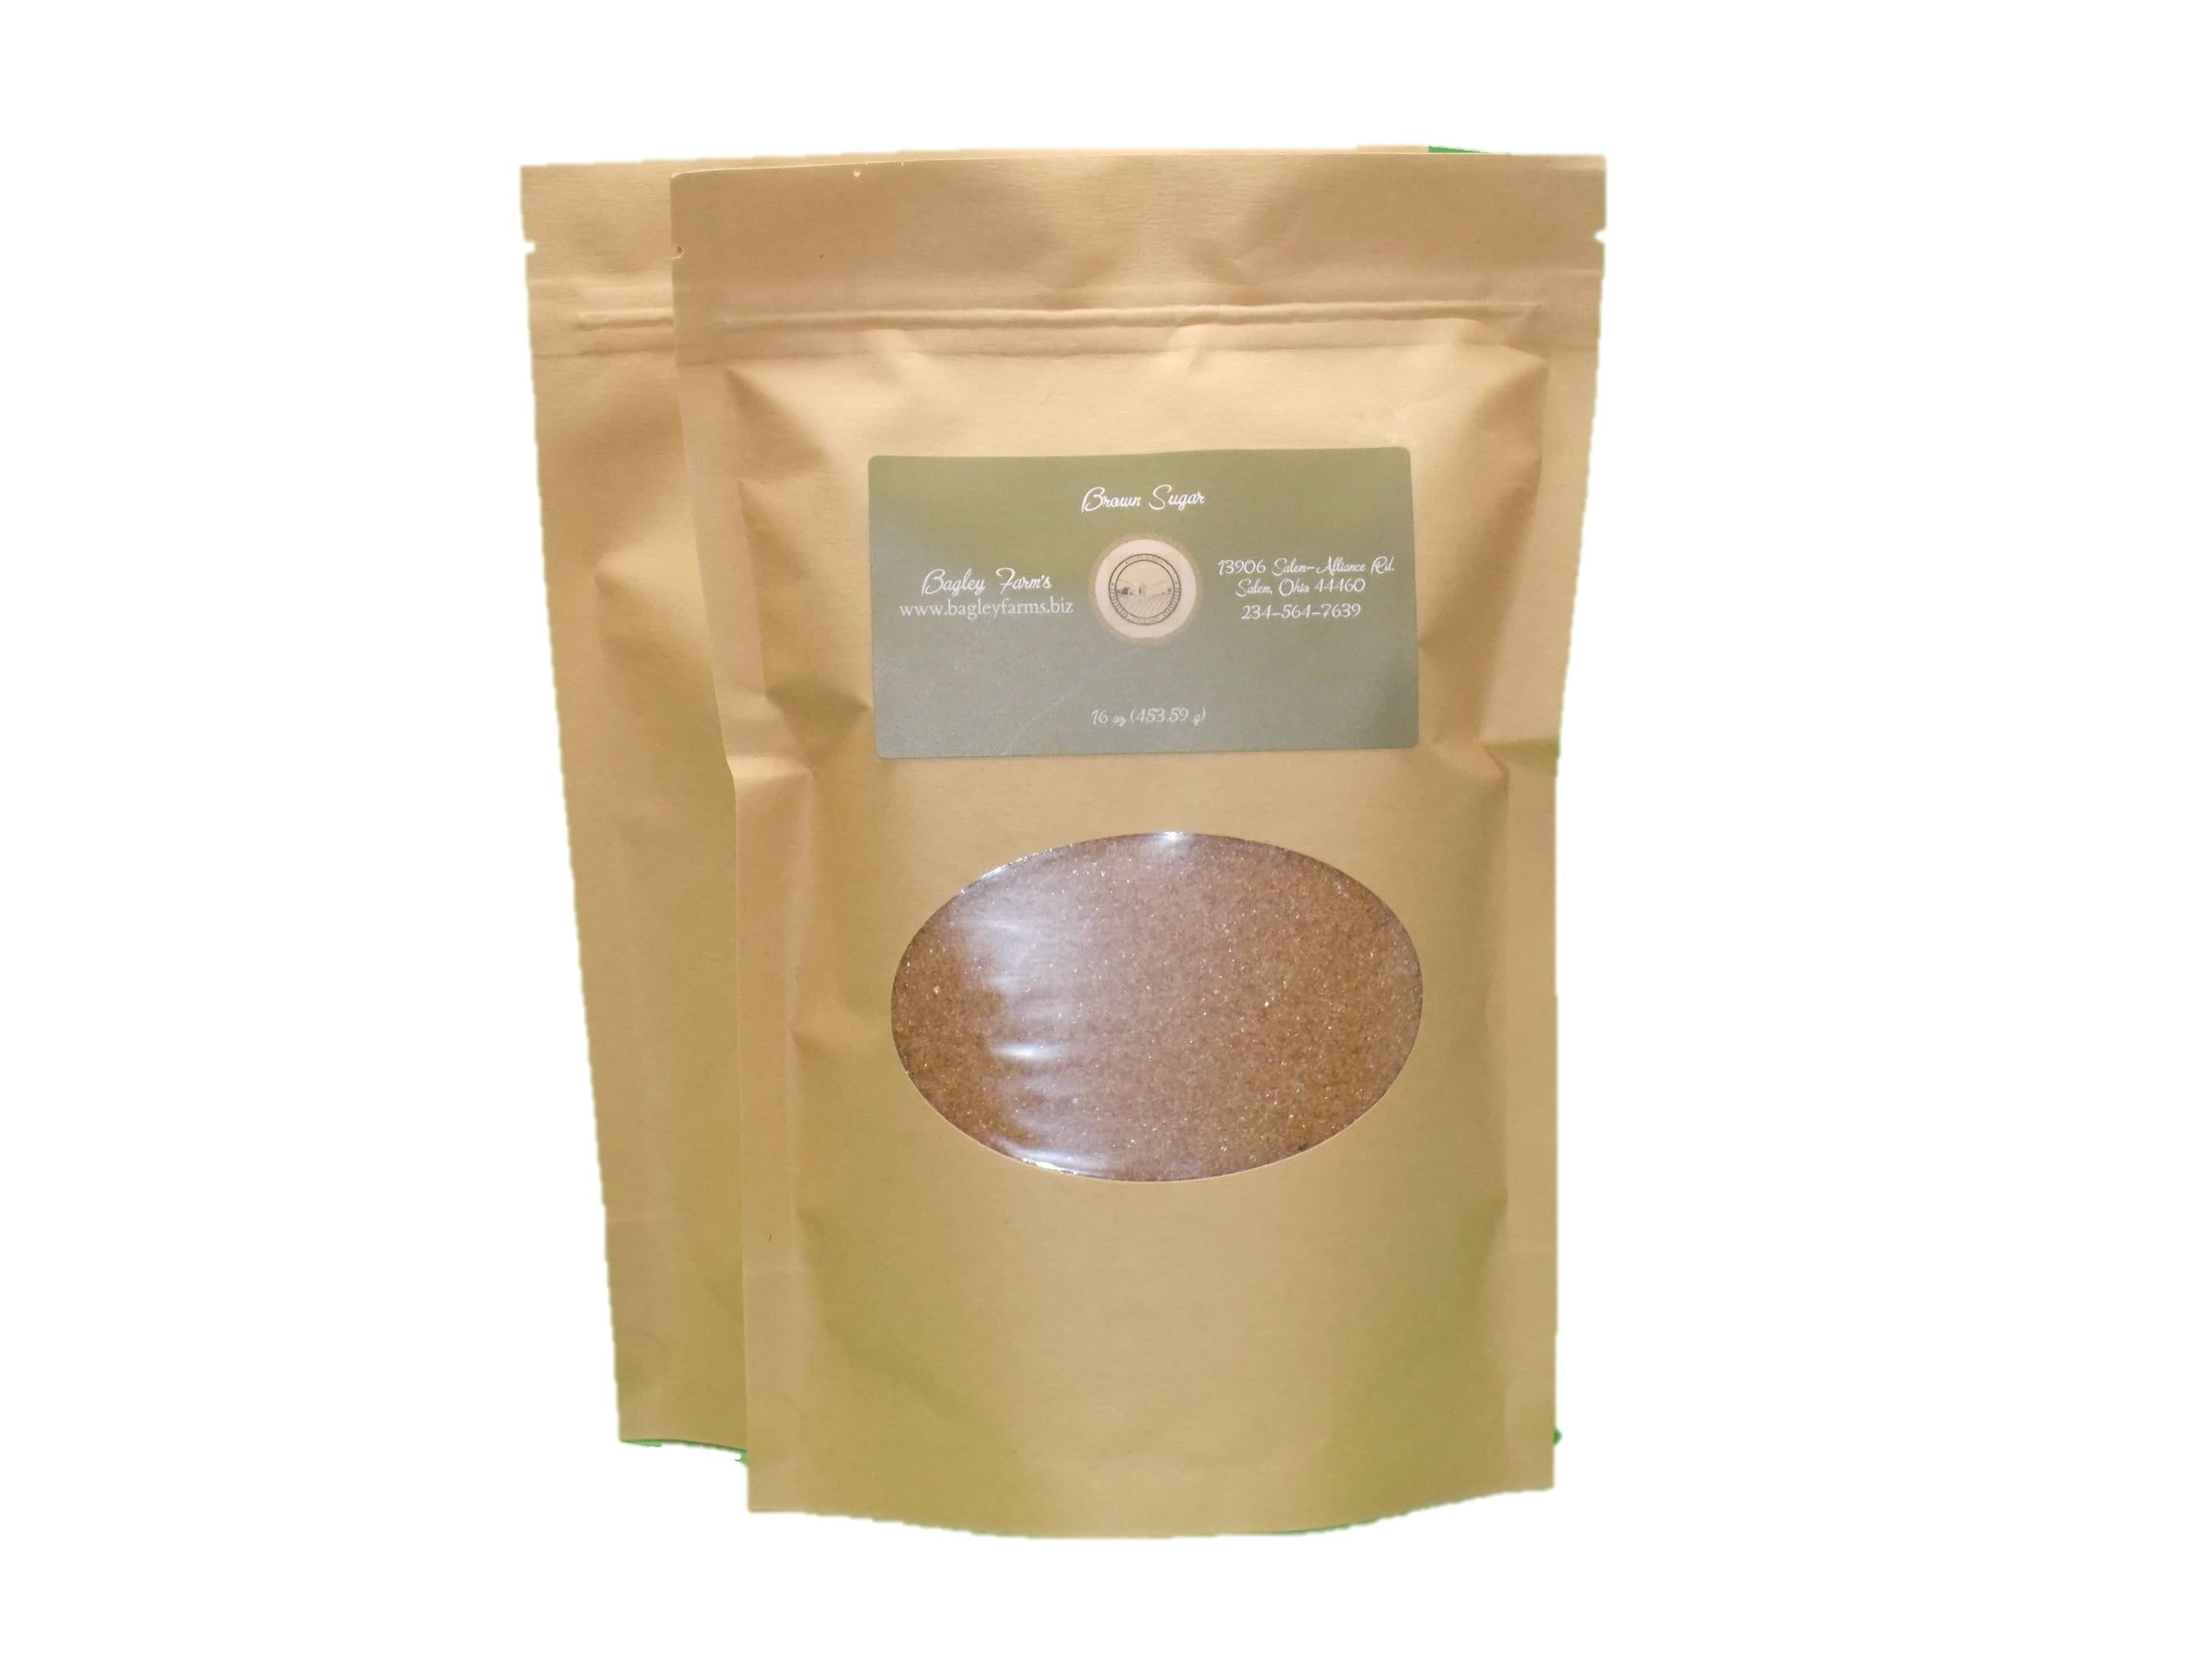 Bagley Farm's Brown Sugar, Light 24 oz